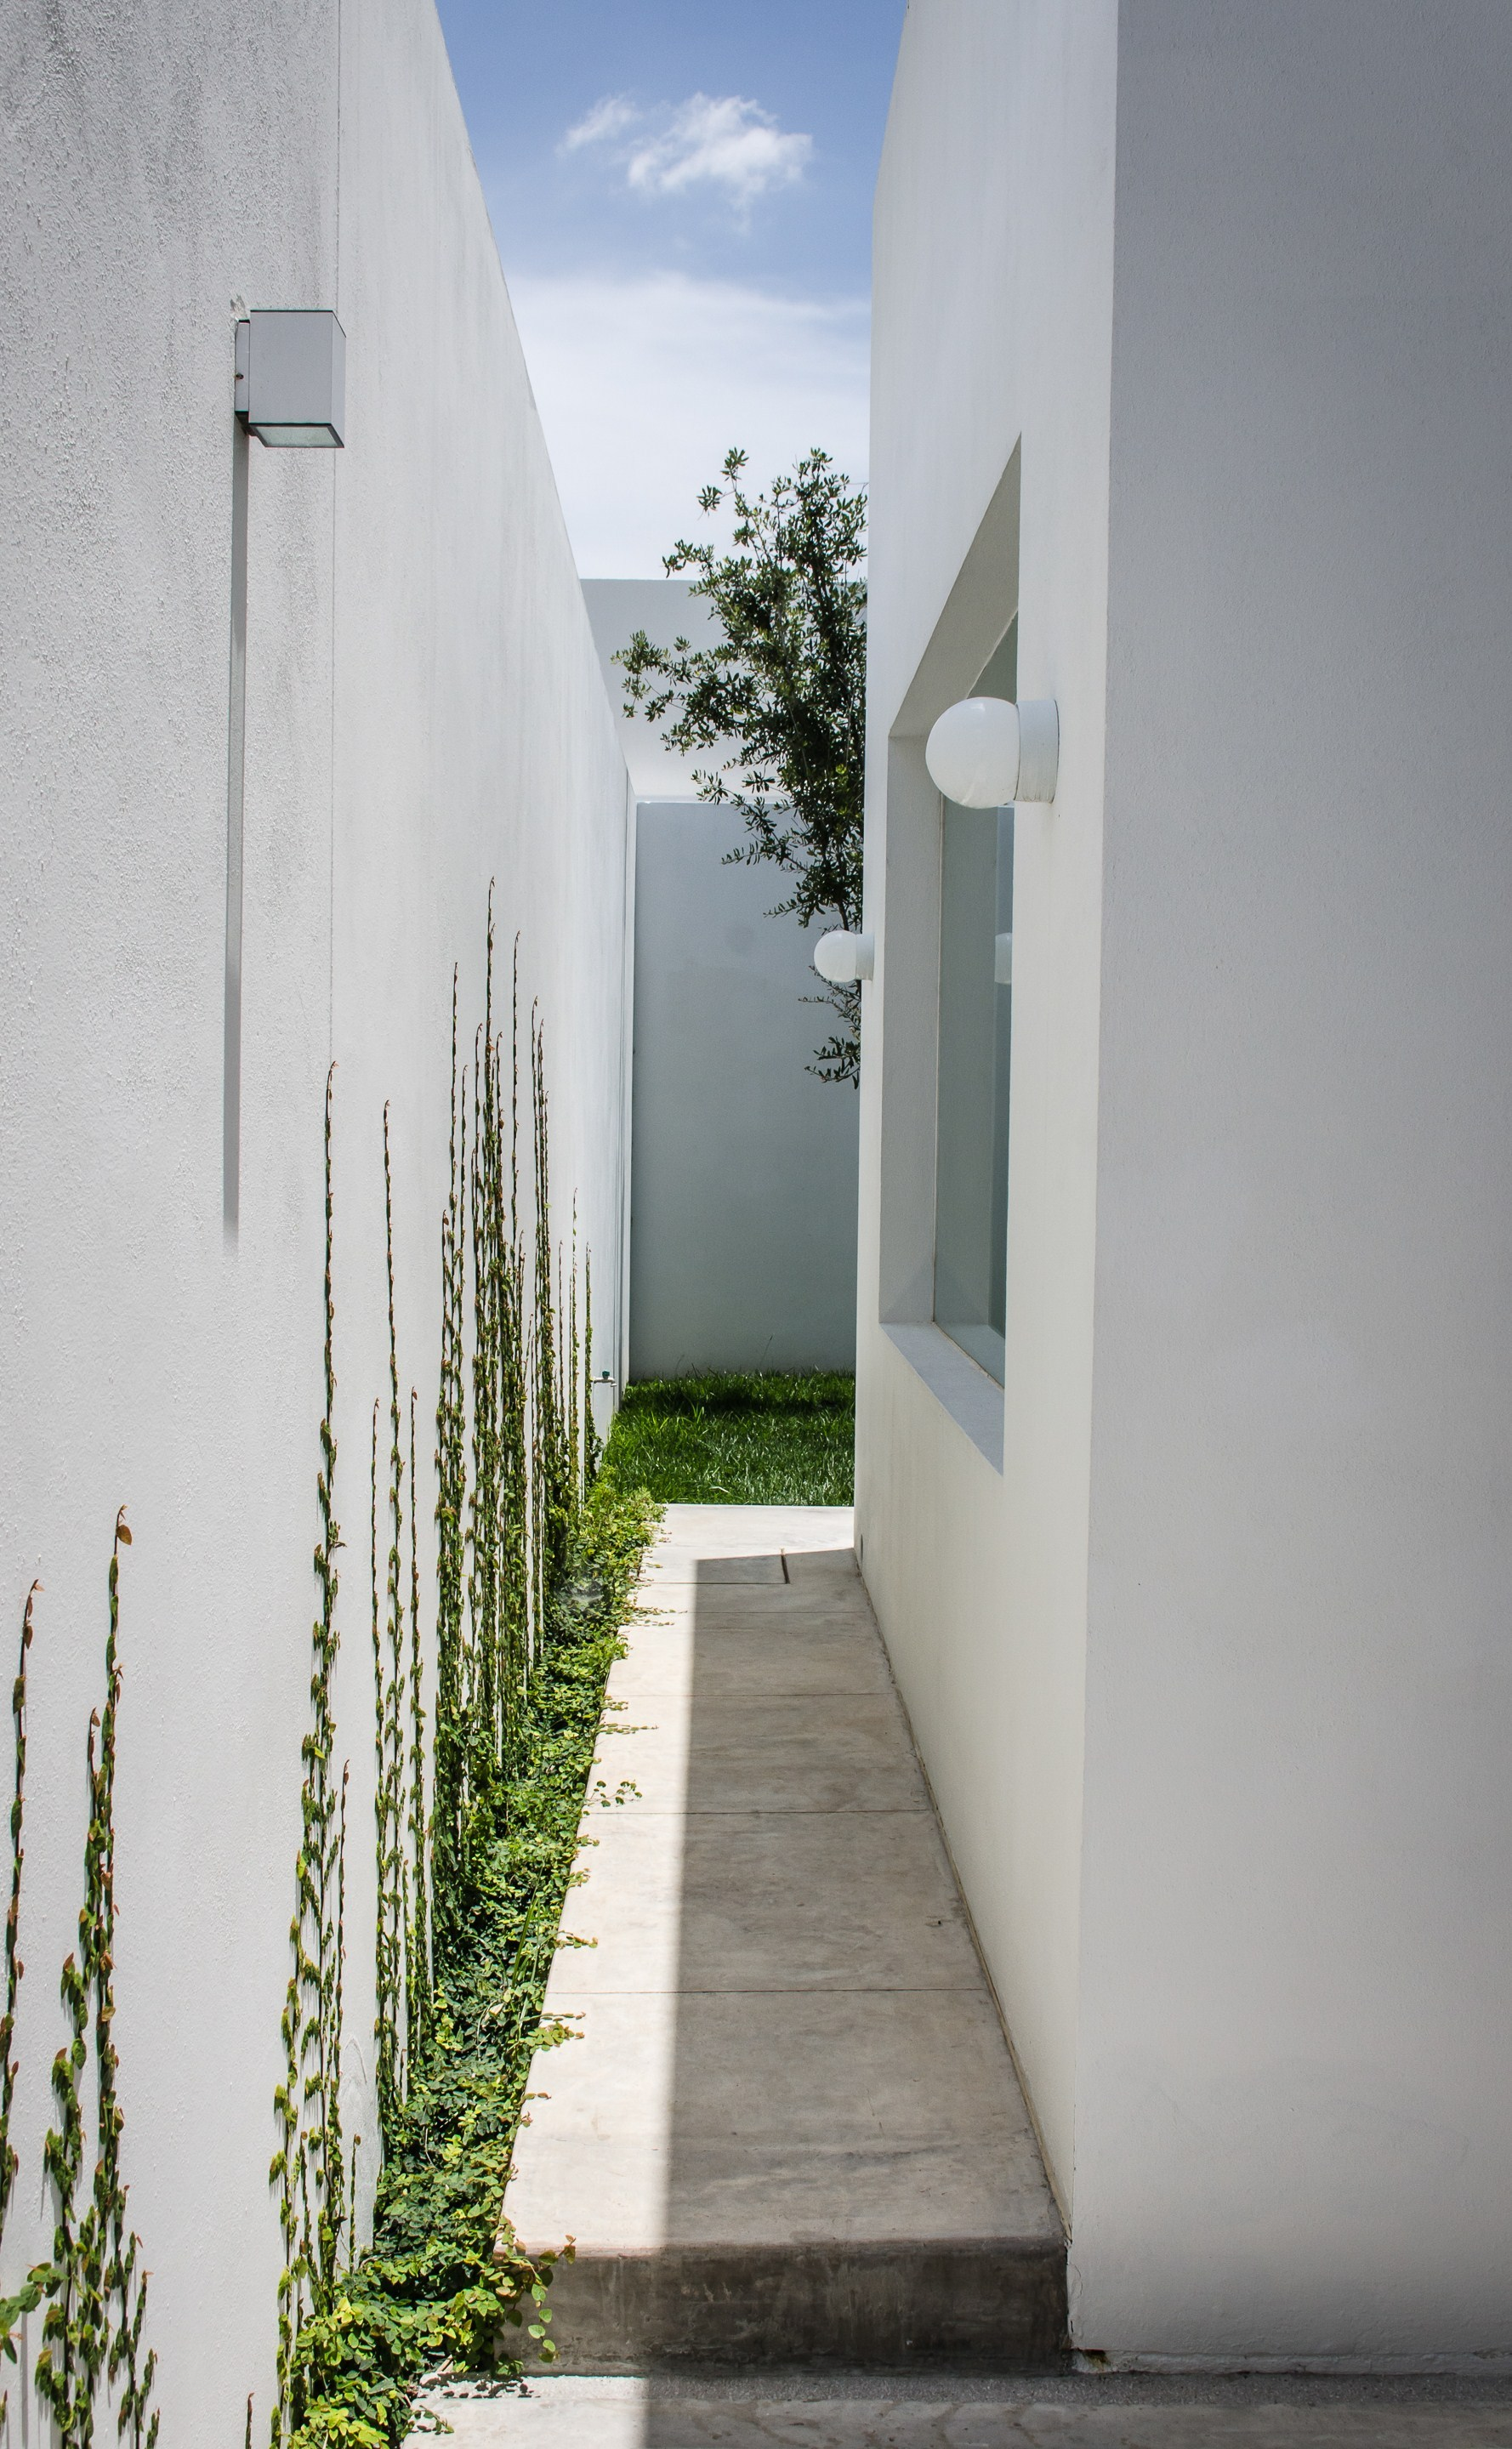 Gallery of t02 adi arquitectura y dise o interior 9 for Adi arquitectura y diseno interior